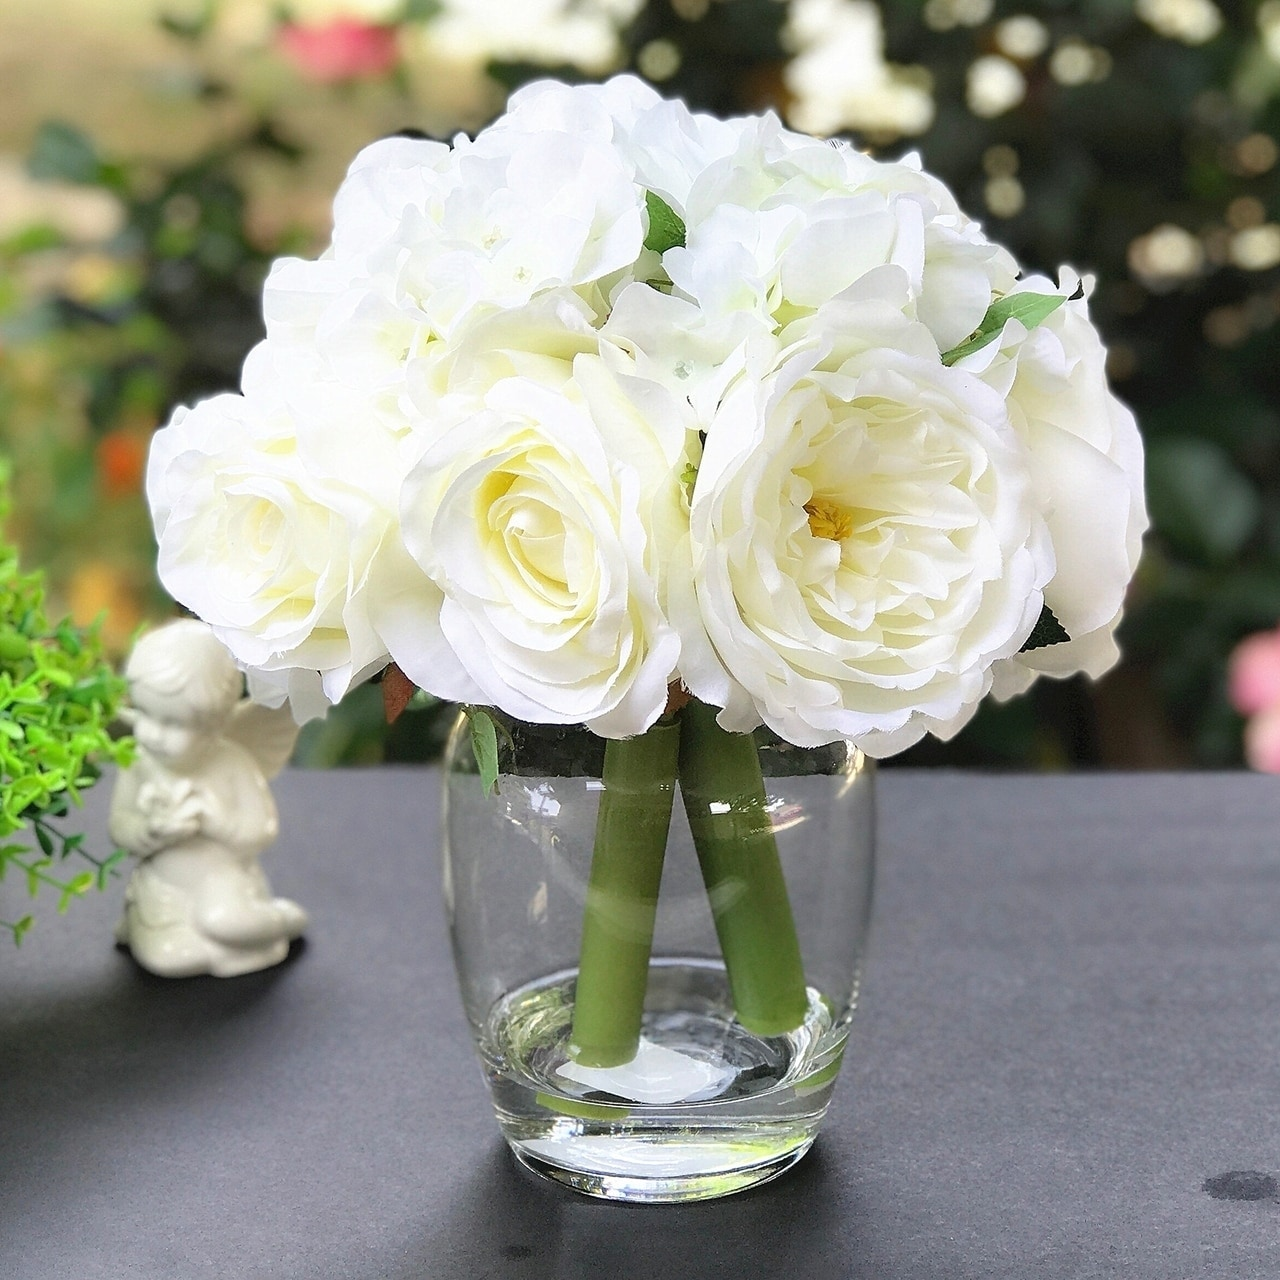 Enova Home Peony Rose And Hydrangea Mixed Faux Flower Arrangement With Clear Glass Vase Overstock 28566971 Cream